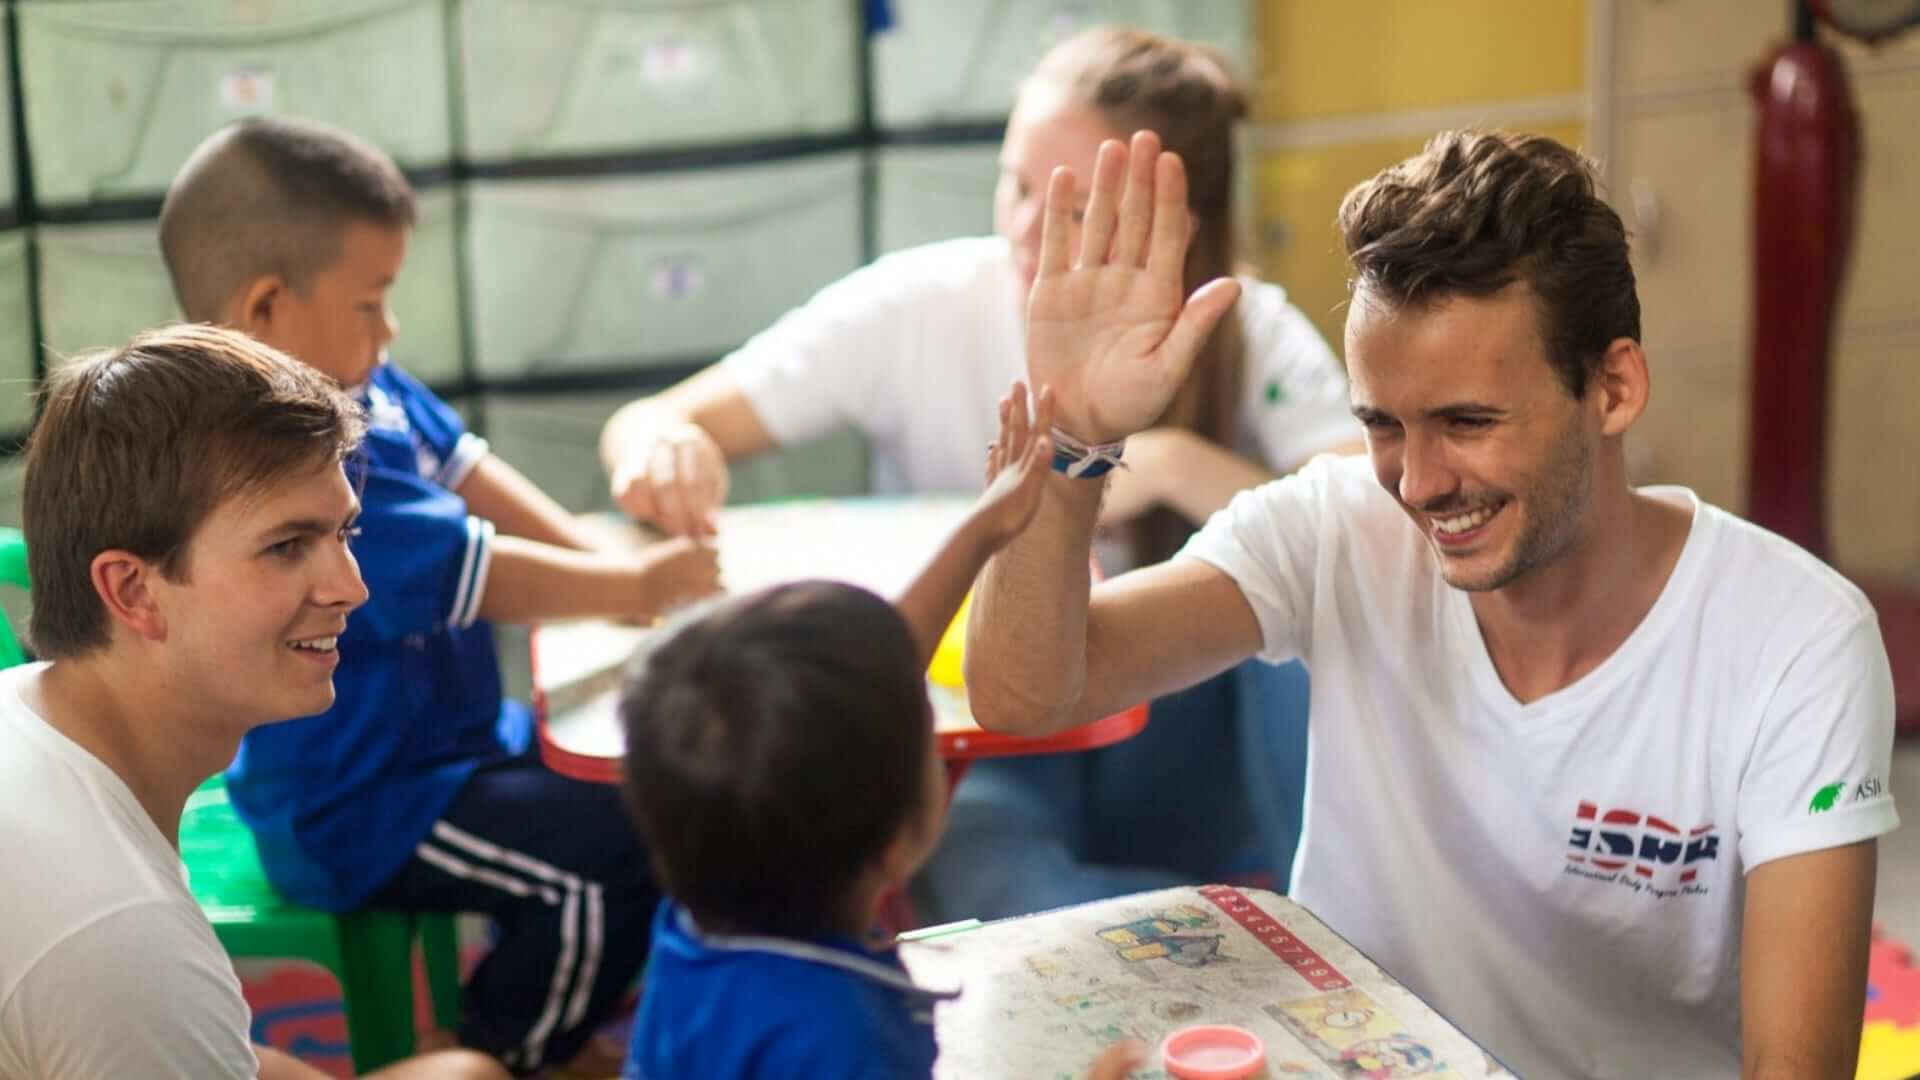 An exchange student is giving a high-five to a Thai child during a charity event in Thailand.